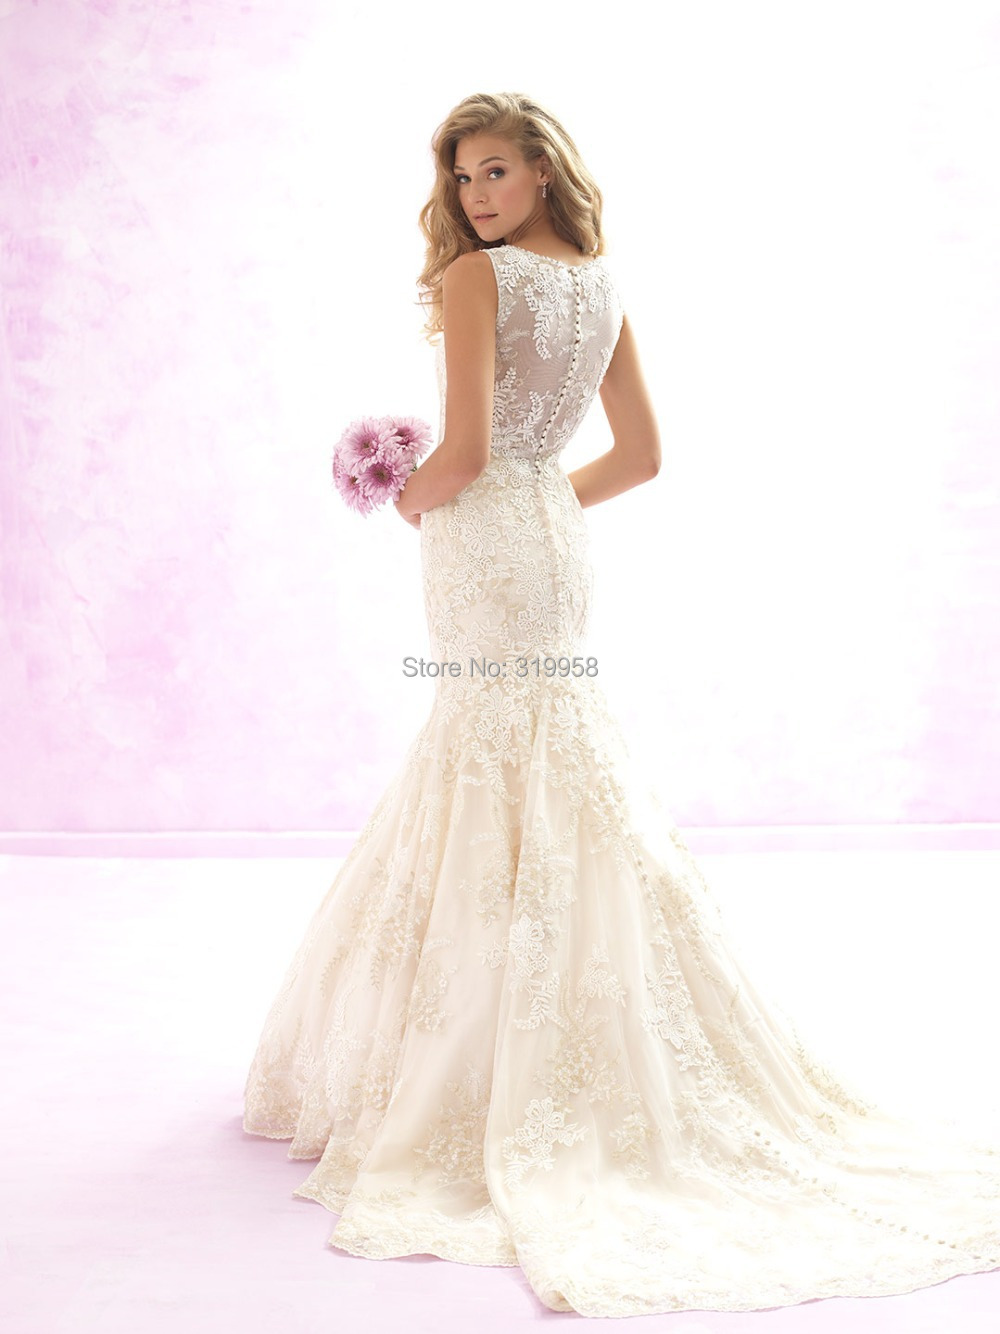 2015 Vintage Lace Mermaid Wedding Dresses Tank Top Appliques Ivory ...